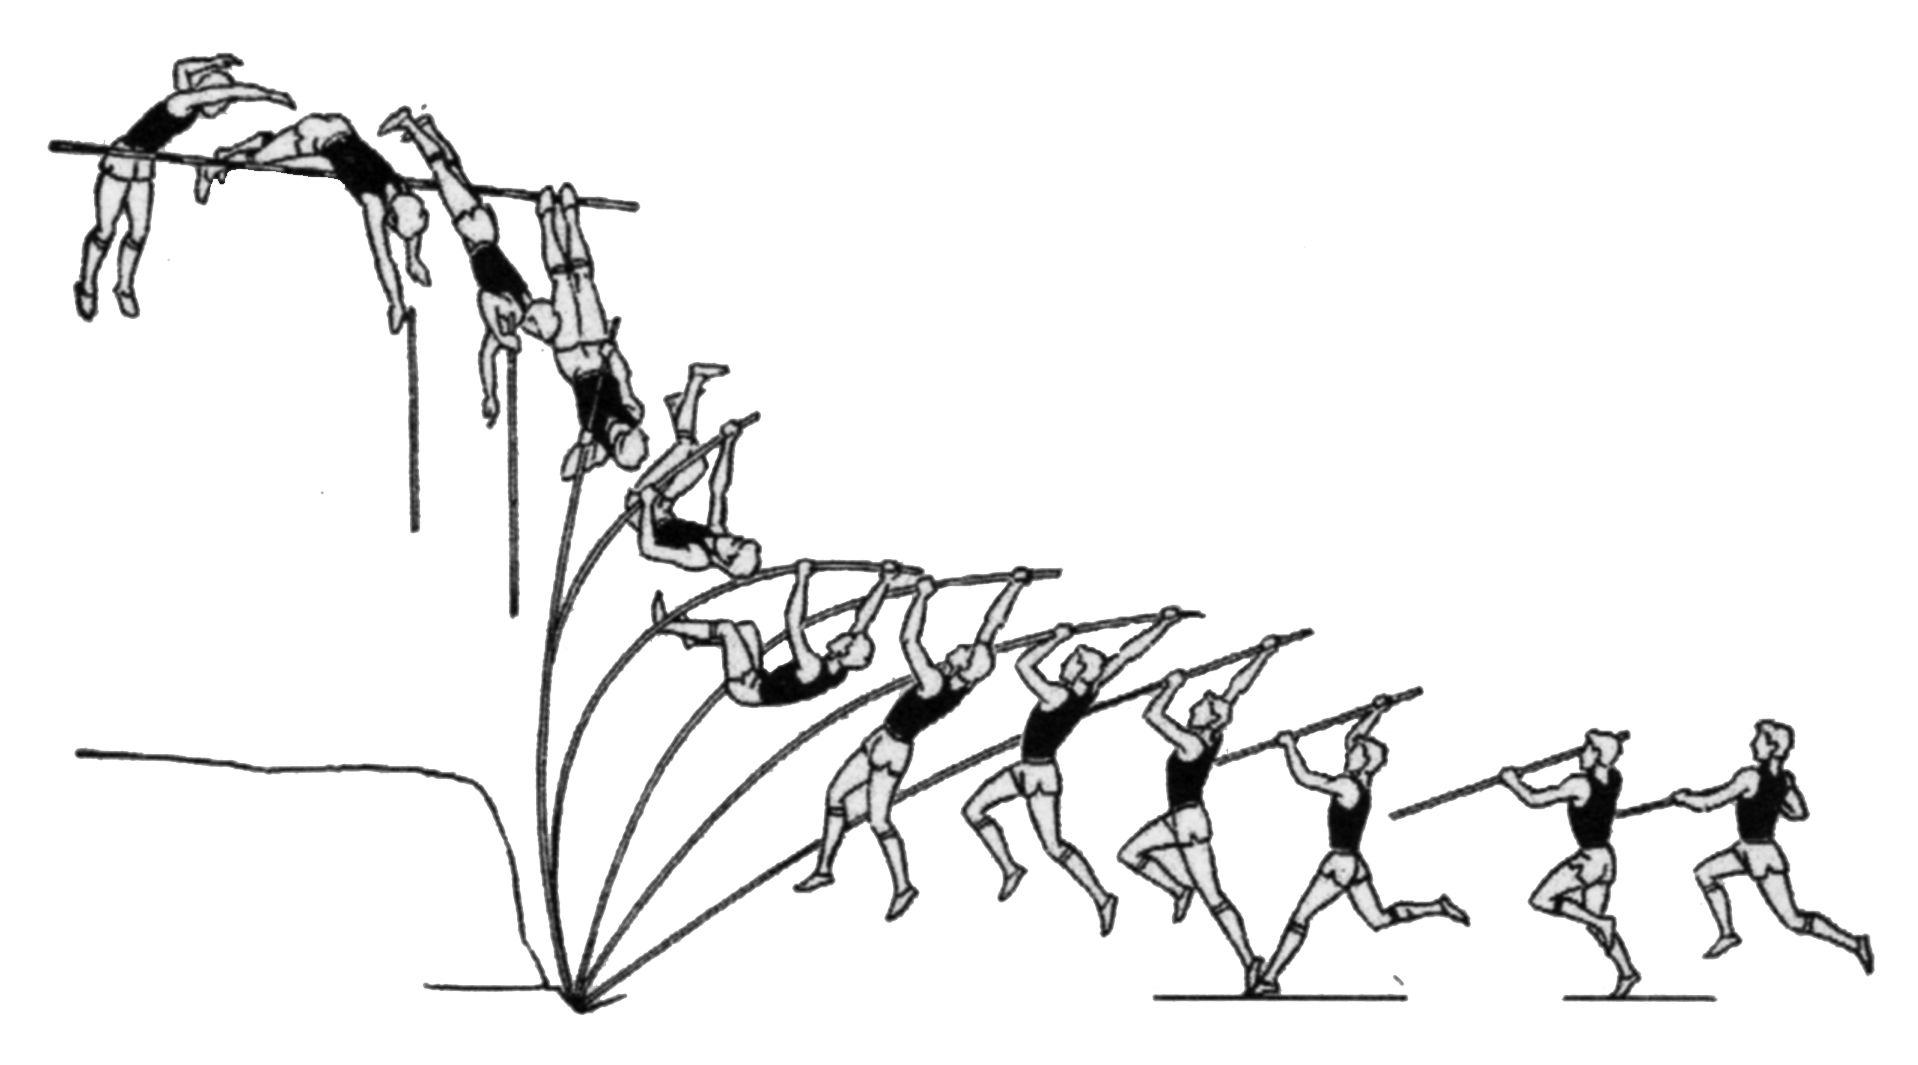 The coloring book of physics - Typical Sequence Of Actions In The Pole Vault Reproduced In Sports Physics From Ganslen 1979